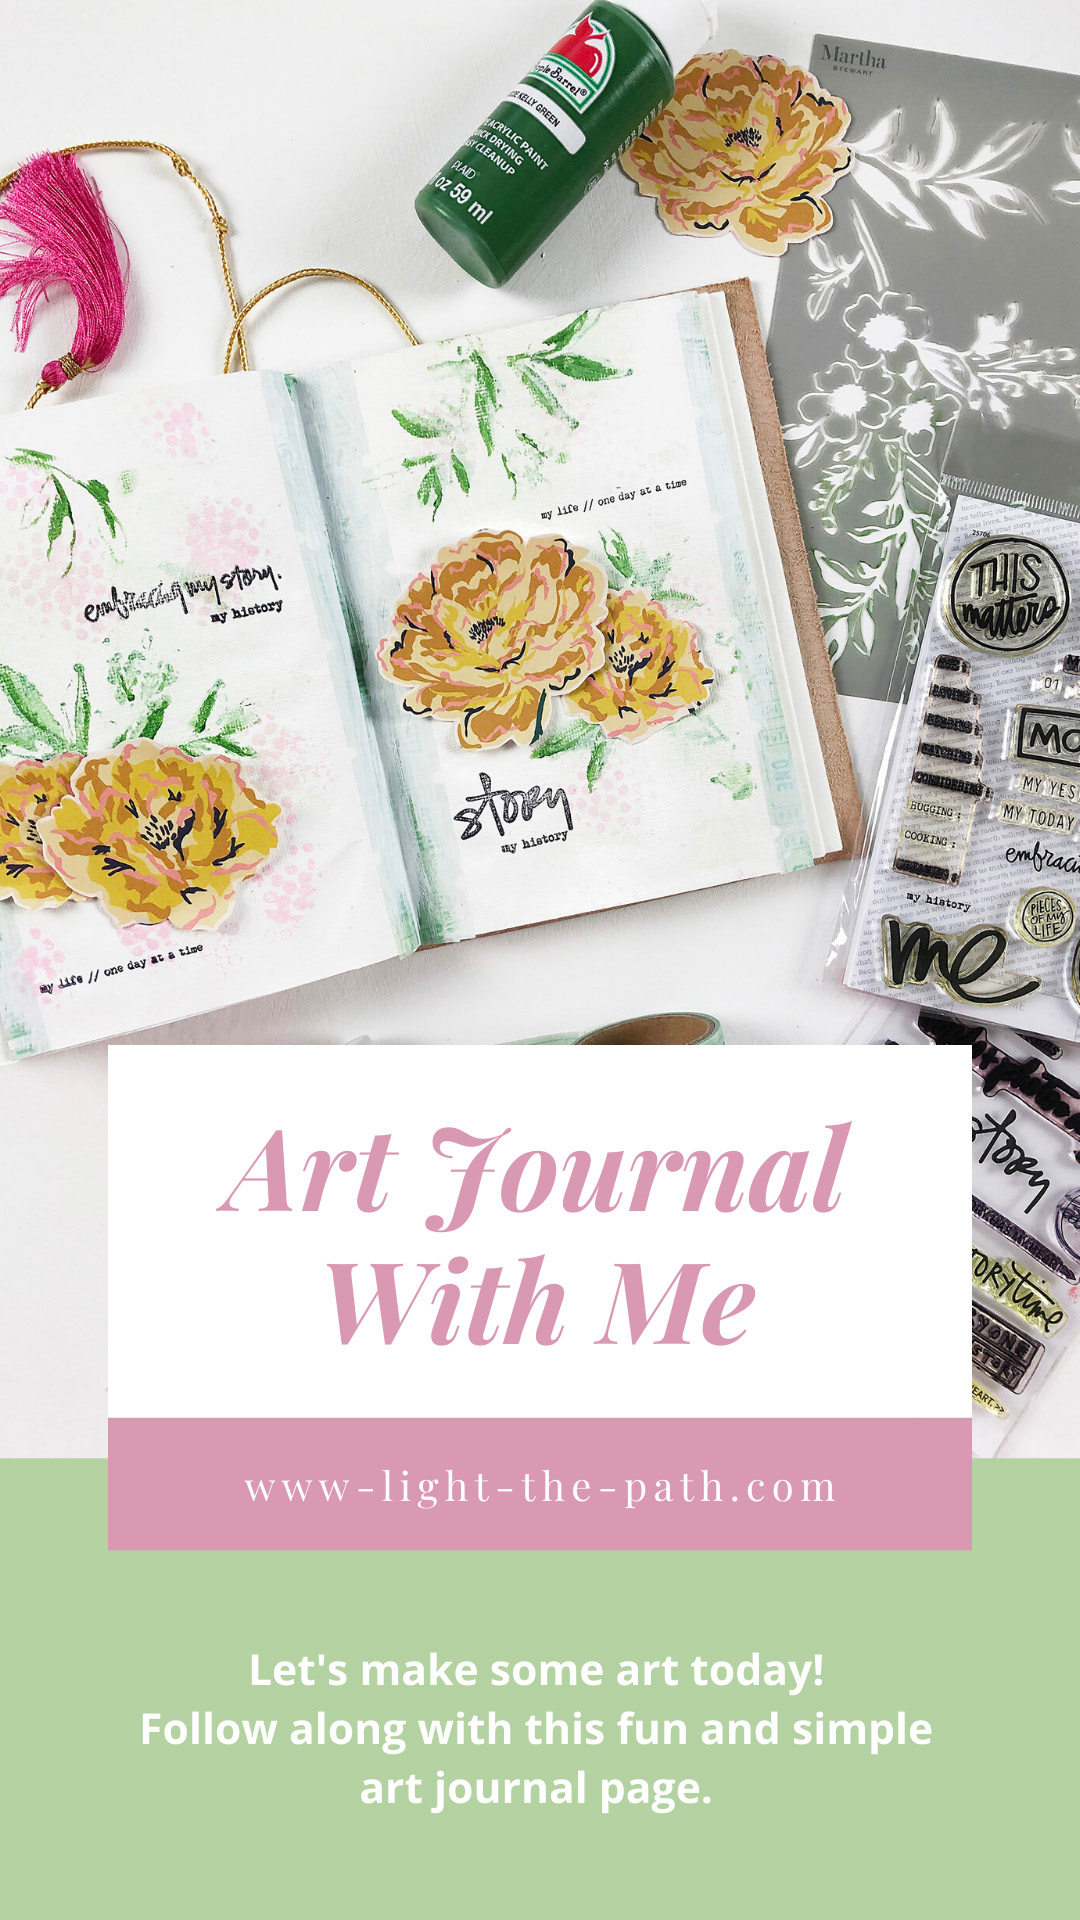 Light The Path Art Journal Volume 04 Layout 07 | Embracing My Story